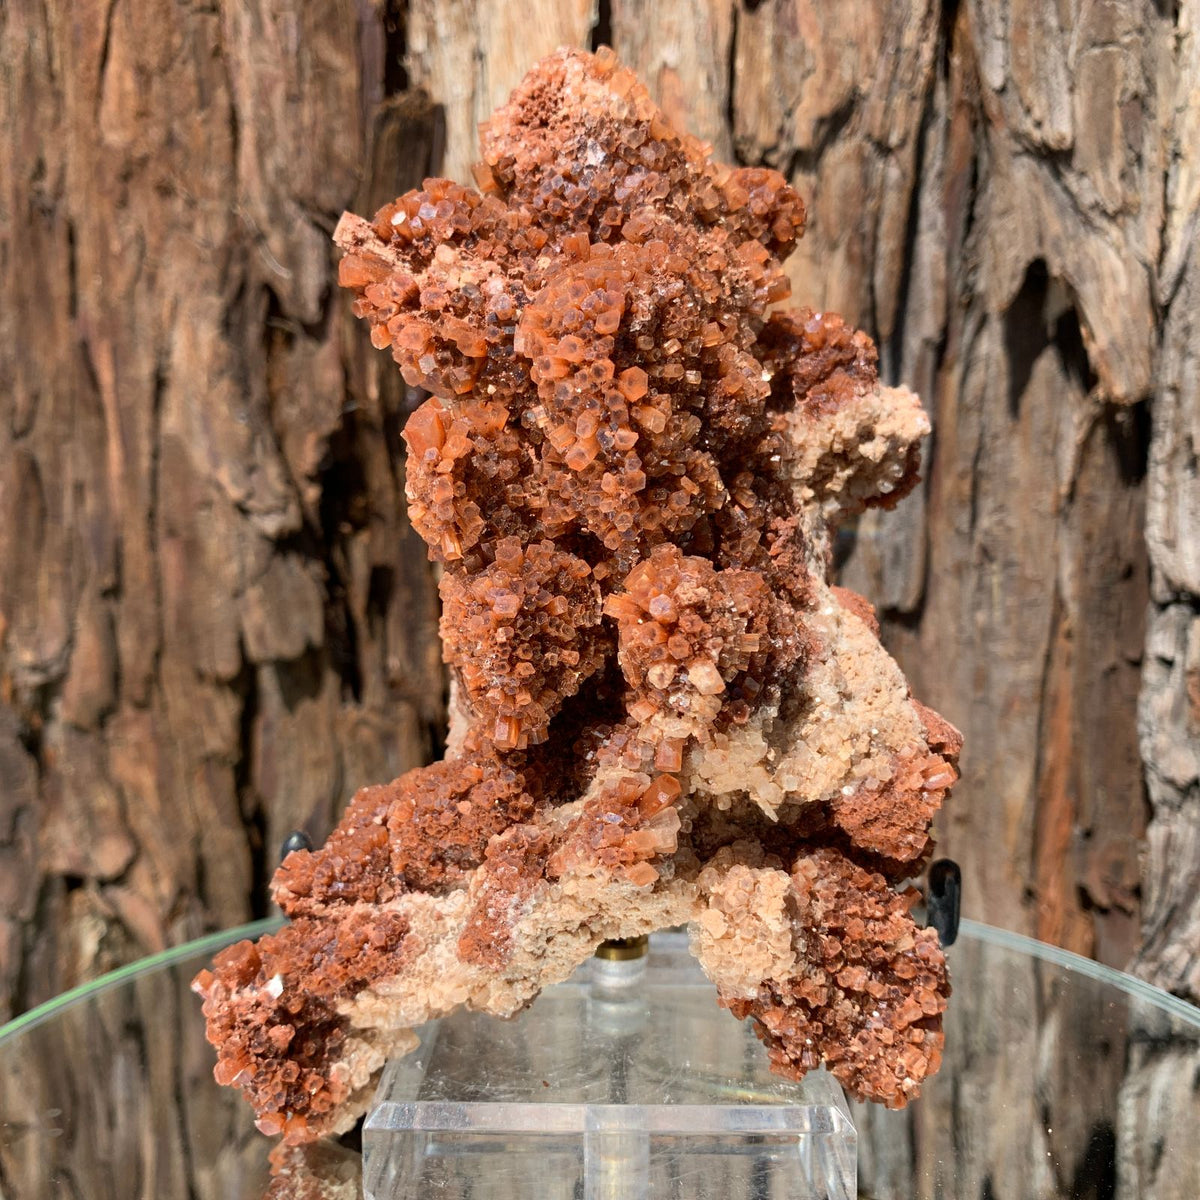 15cm 546g Aragonite from Morocco